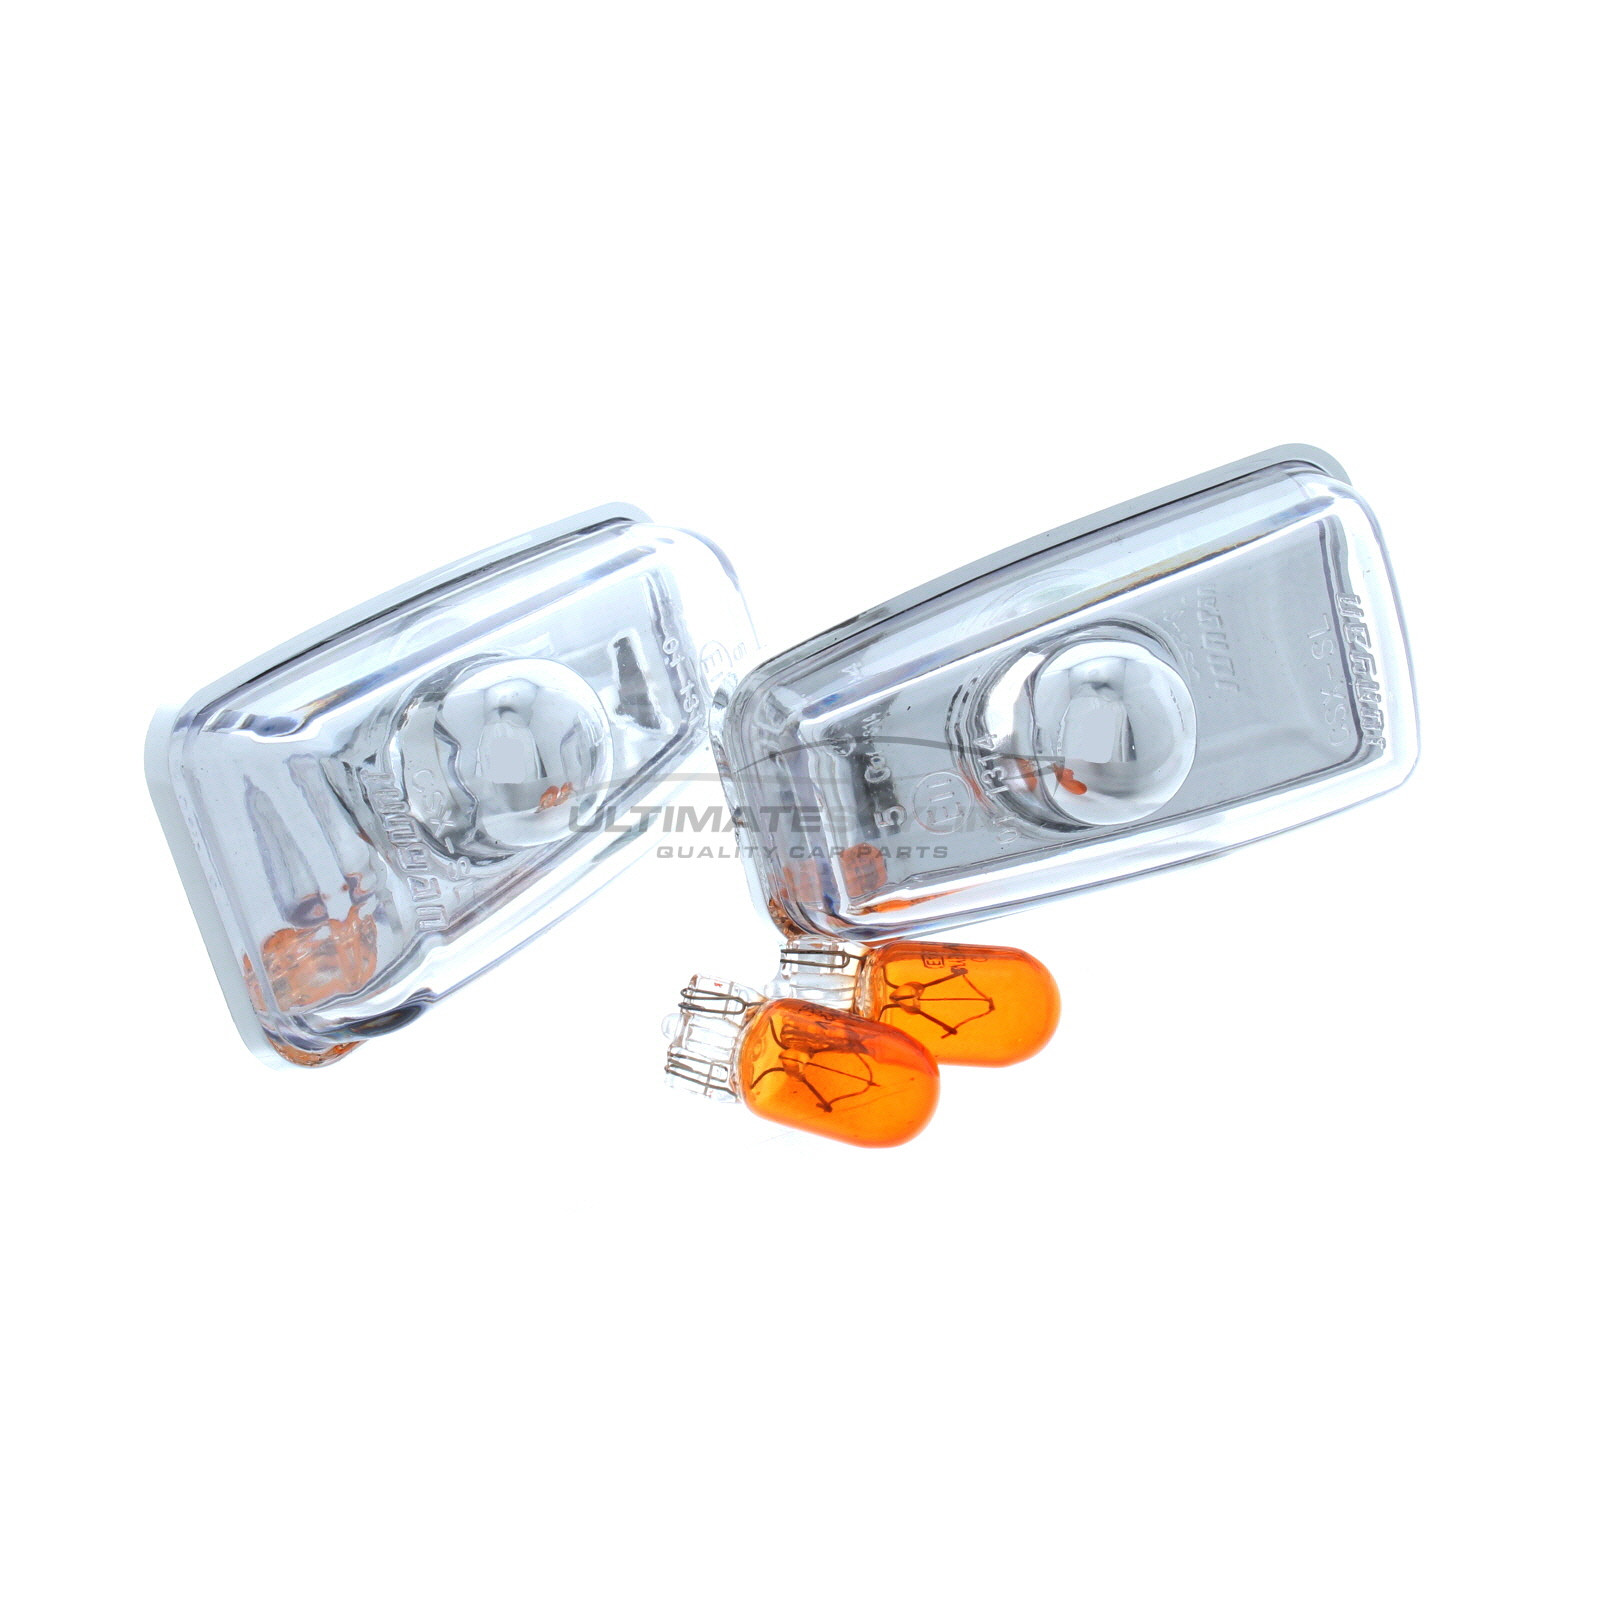 CRYSTAL SMOKED SIDE REPEATERS 1 PAIR